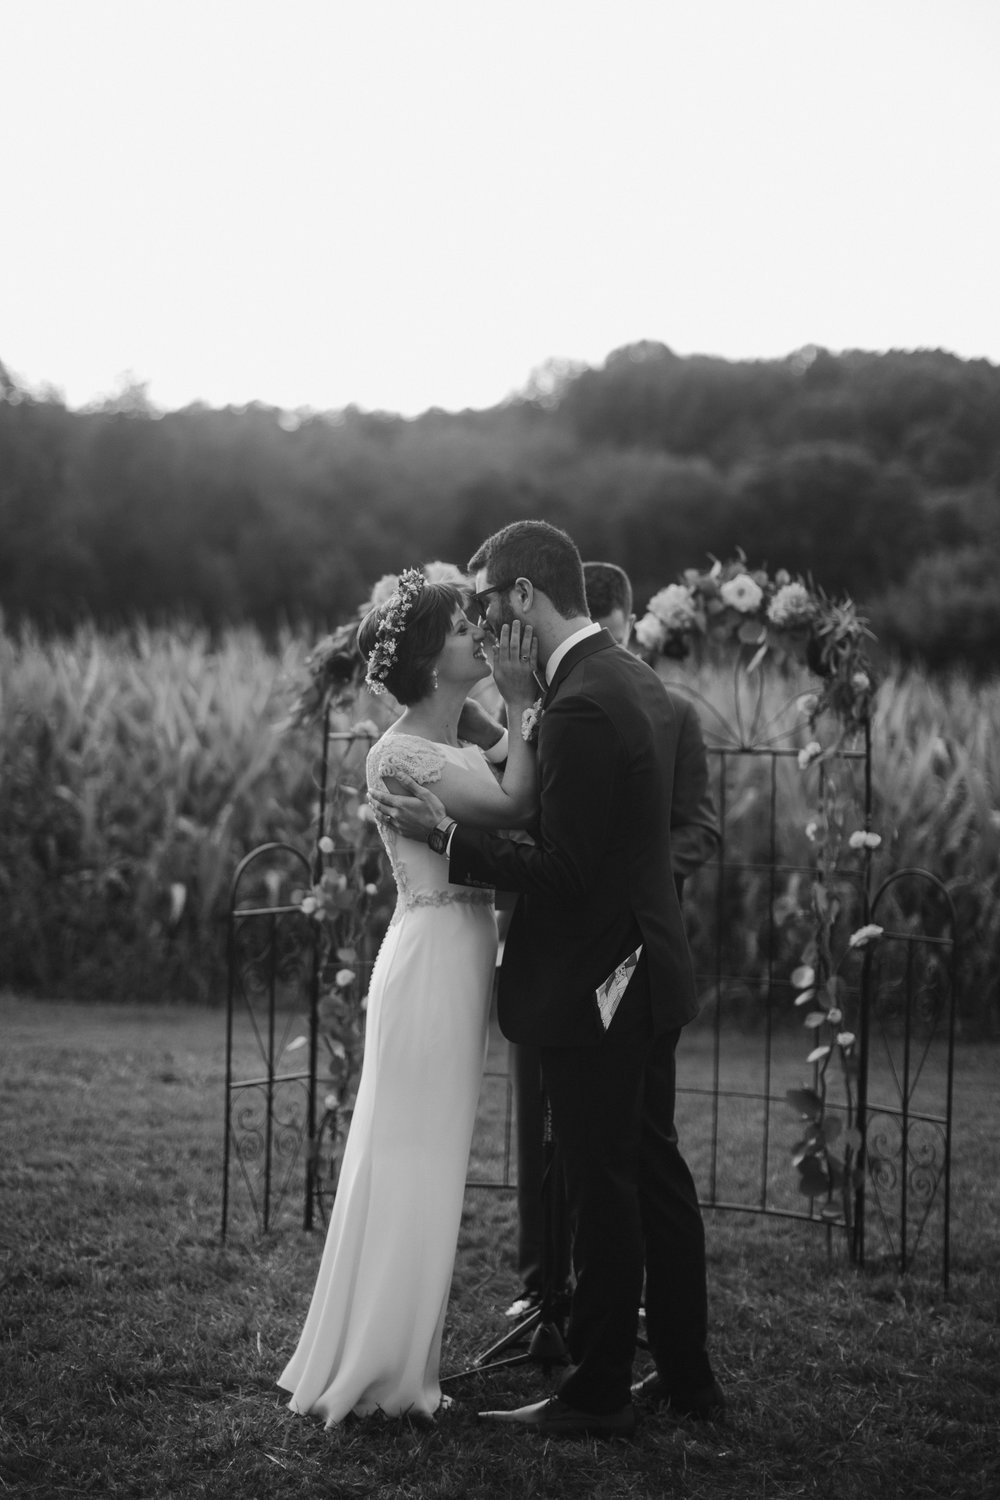 AtlantaWeddingPhotographer_076.JPG